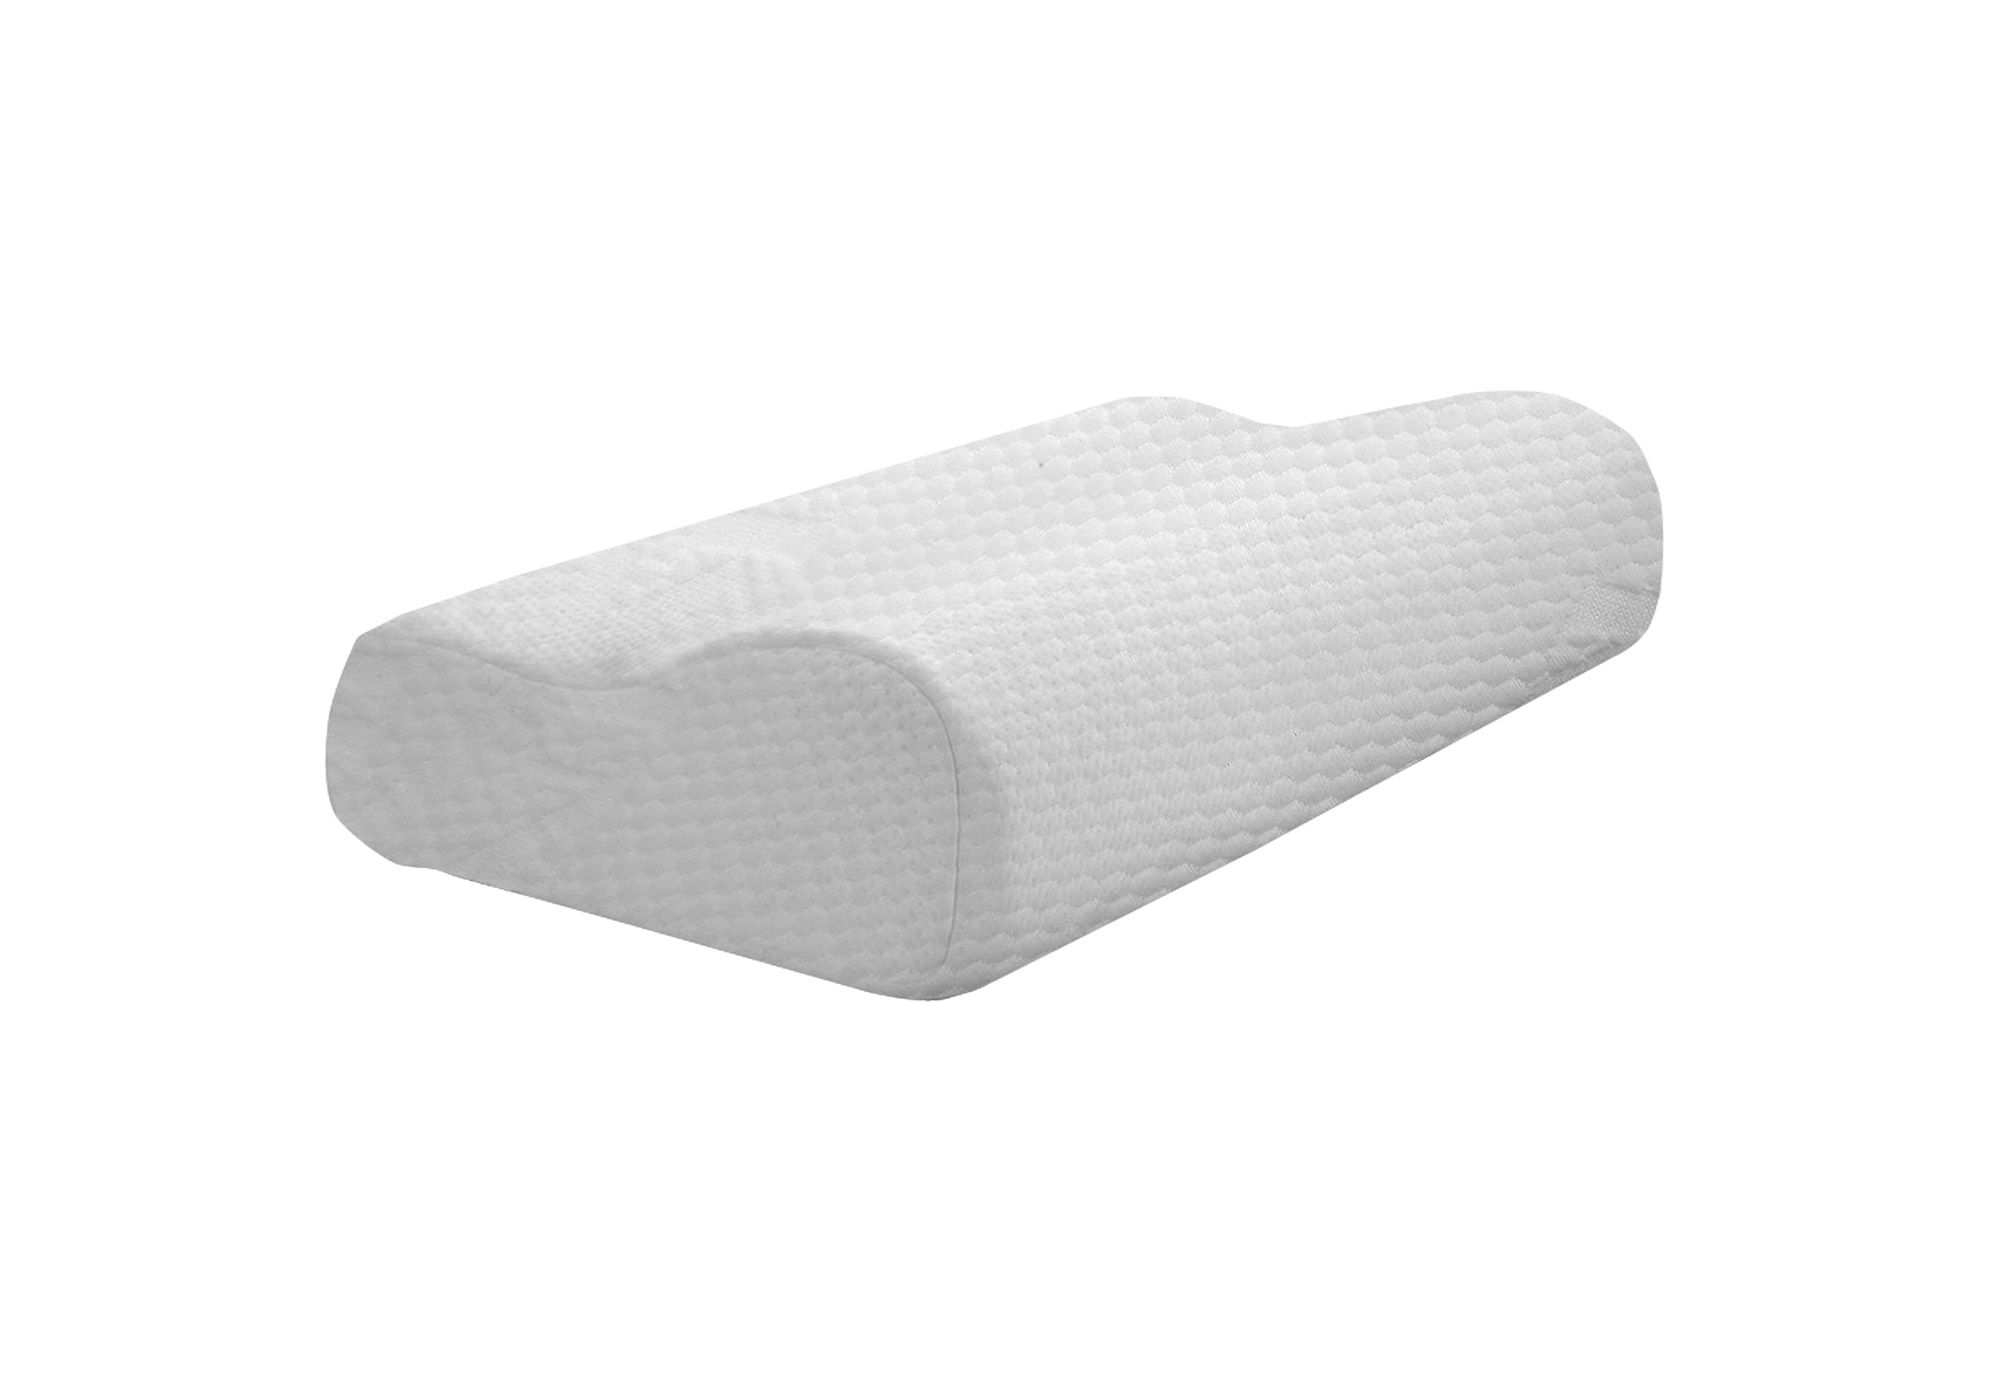 Travesseiro King Koil Ergo-Pedic Memory Foam